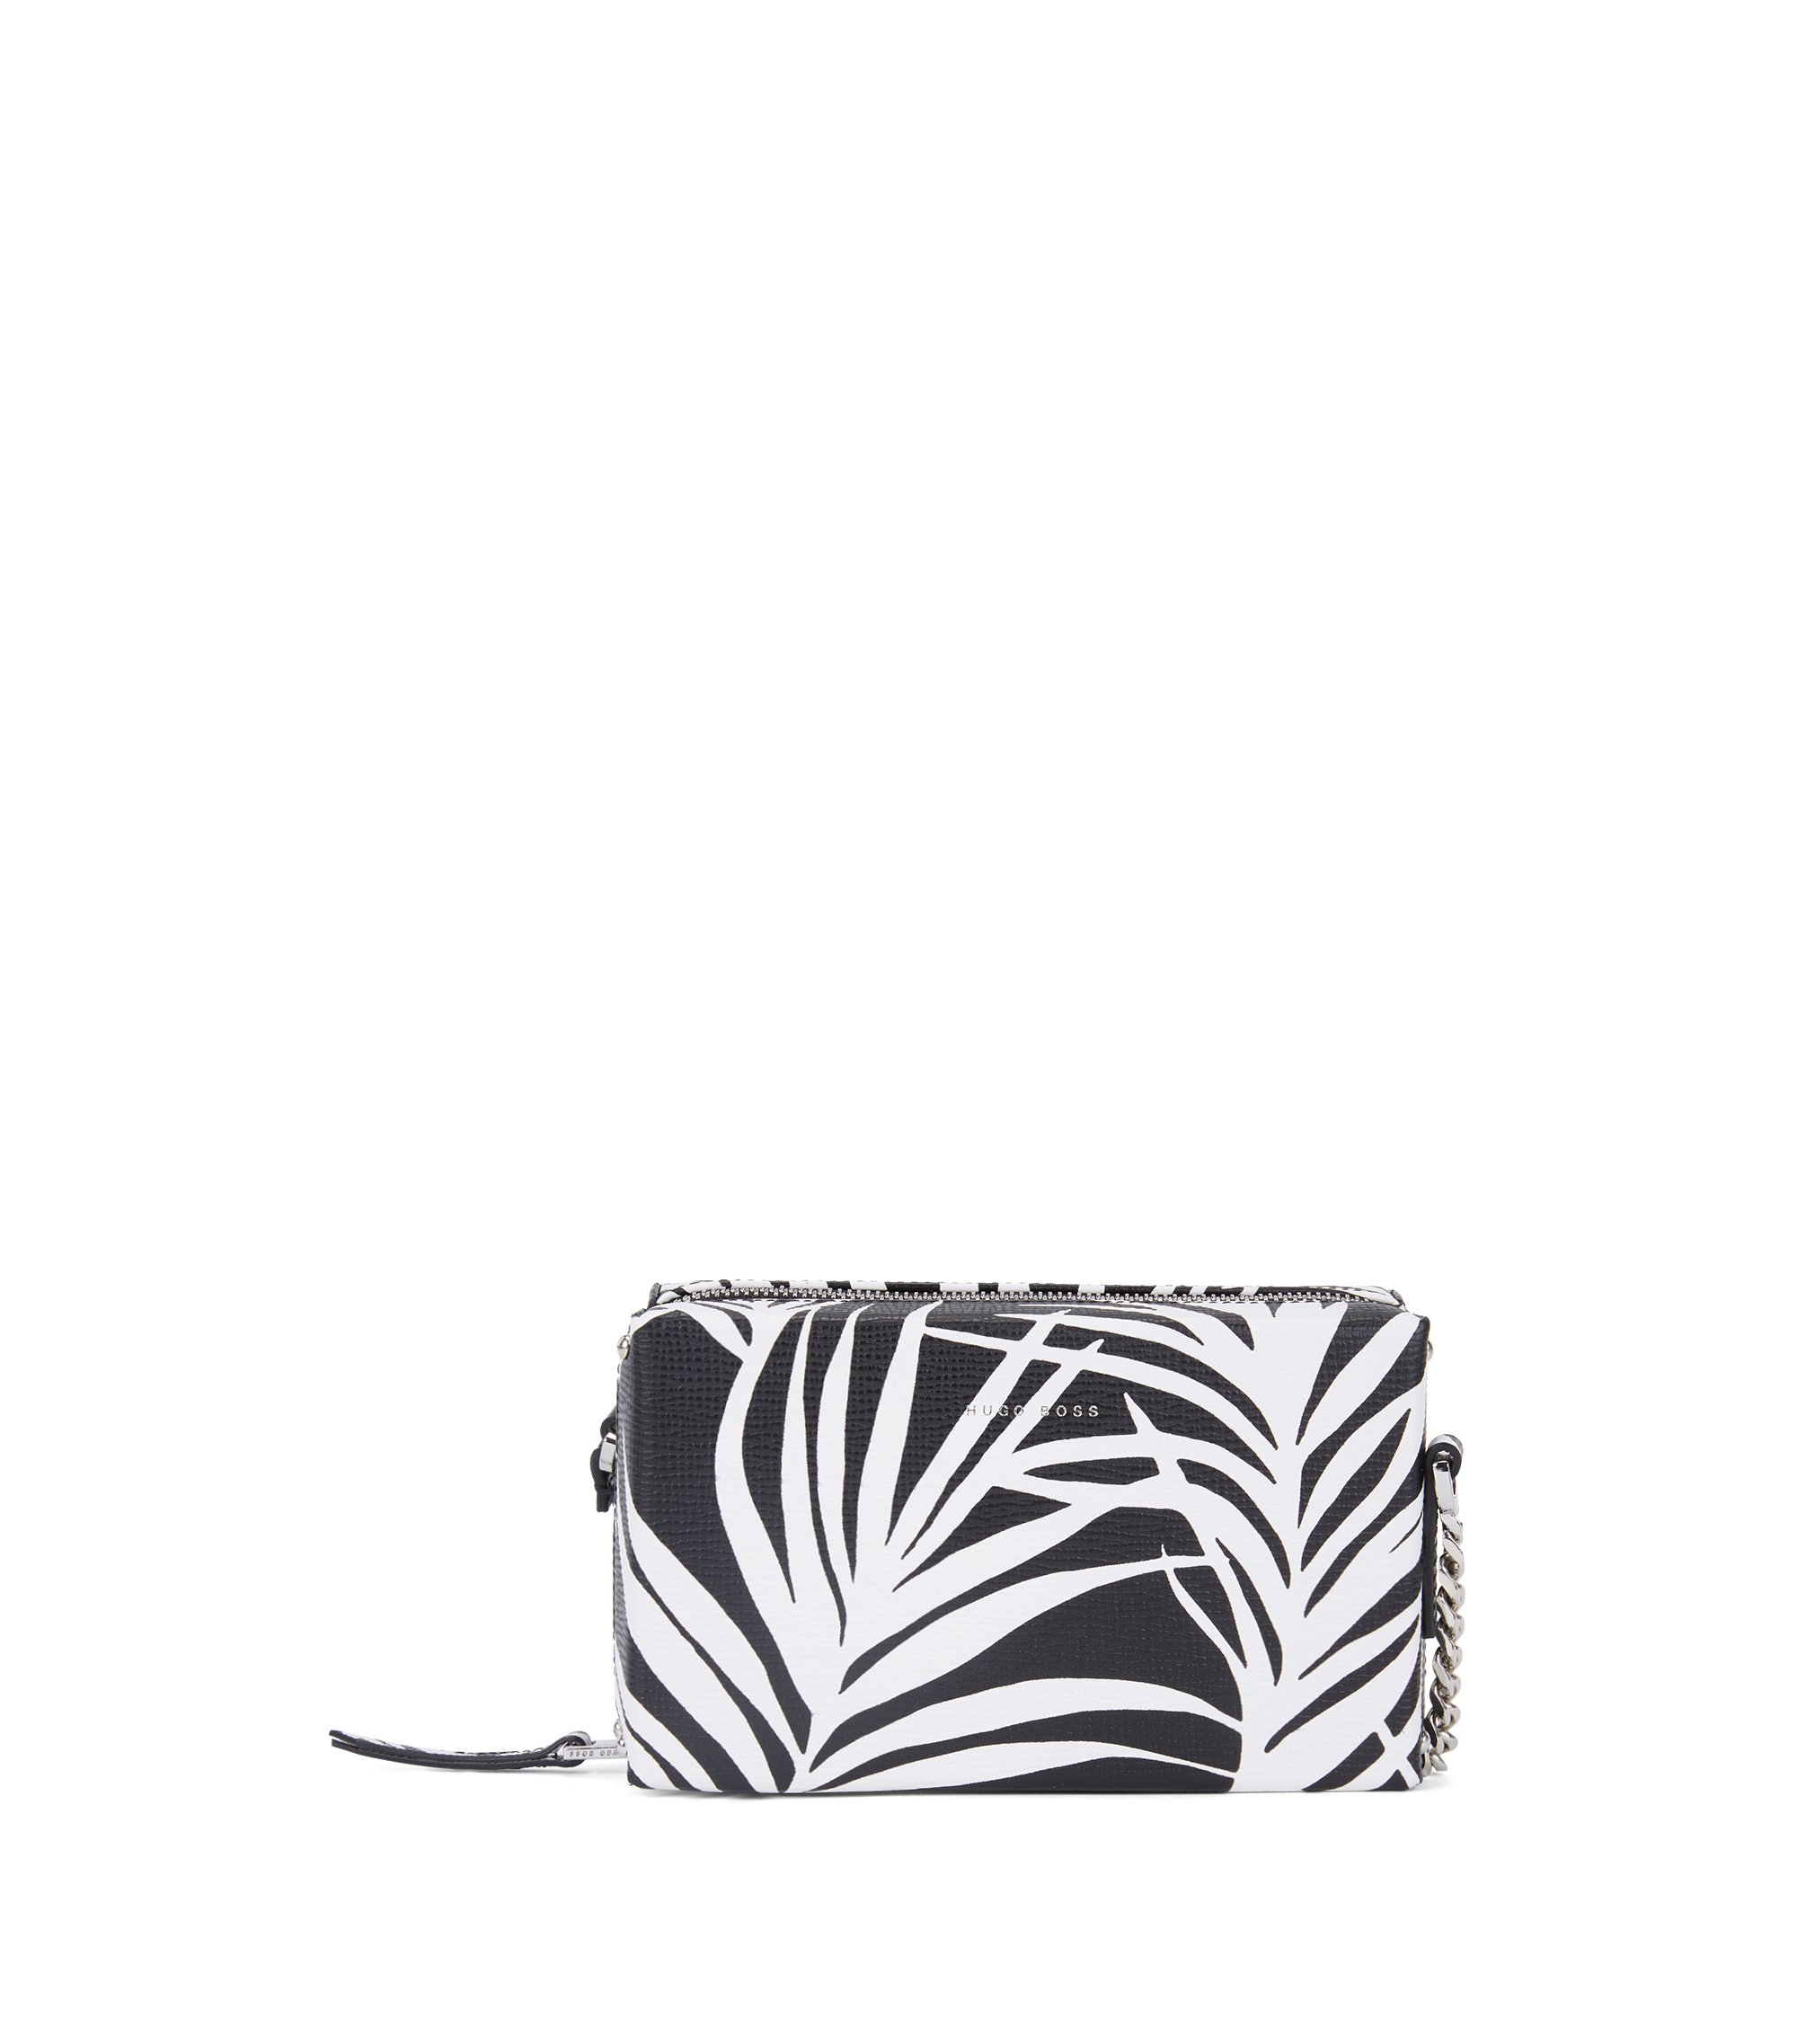 Patterned cross-body bag in Italian calf leather, Black